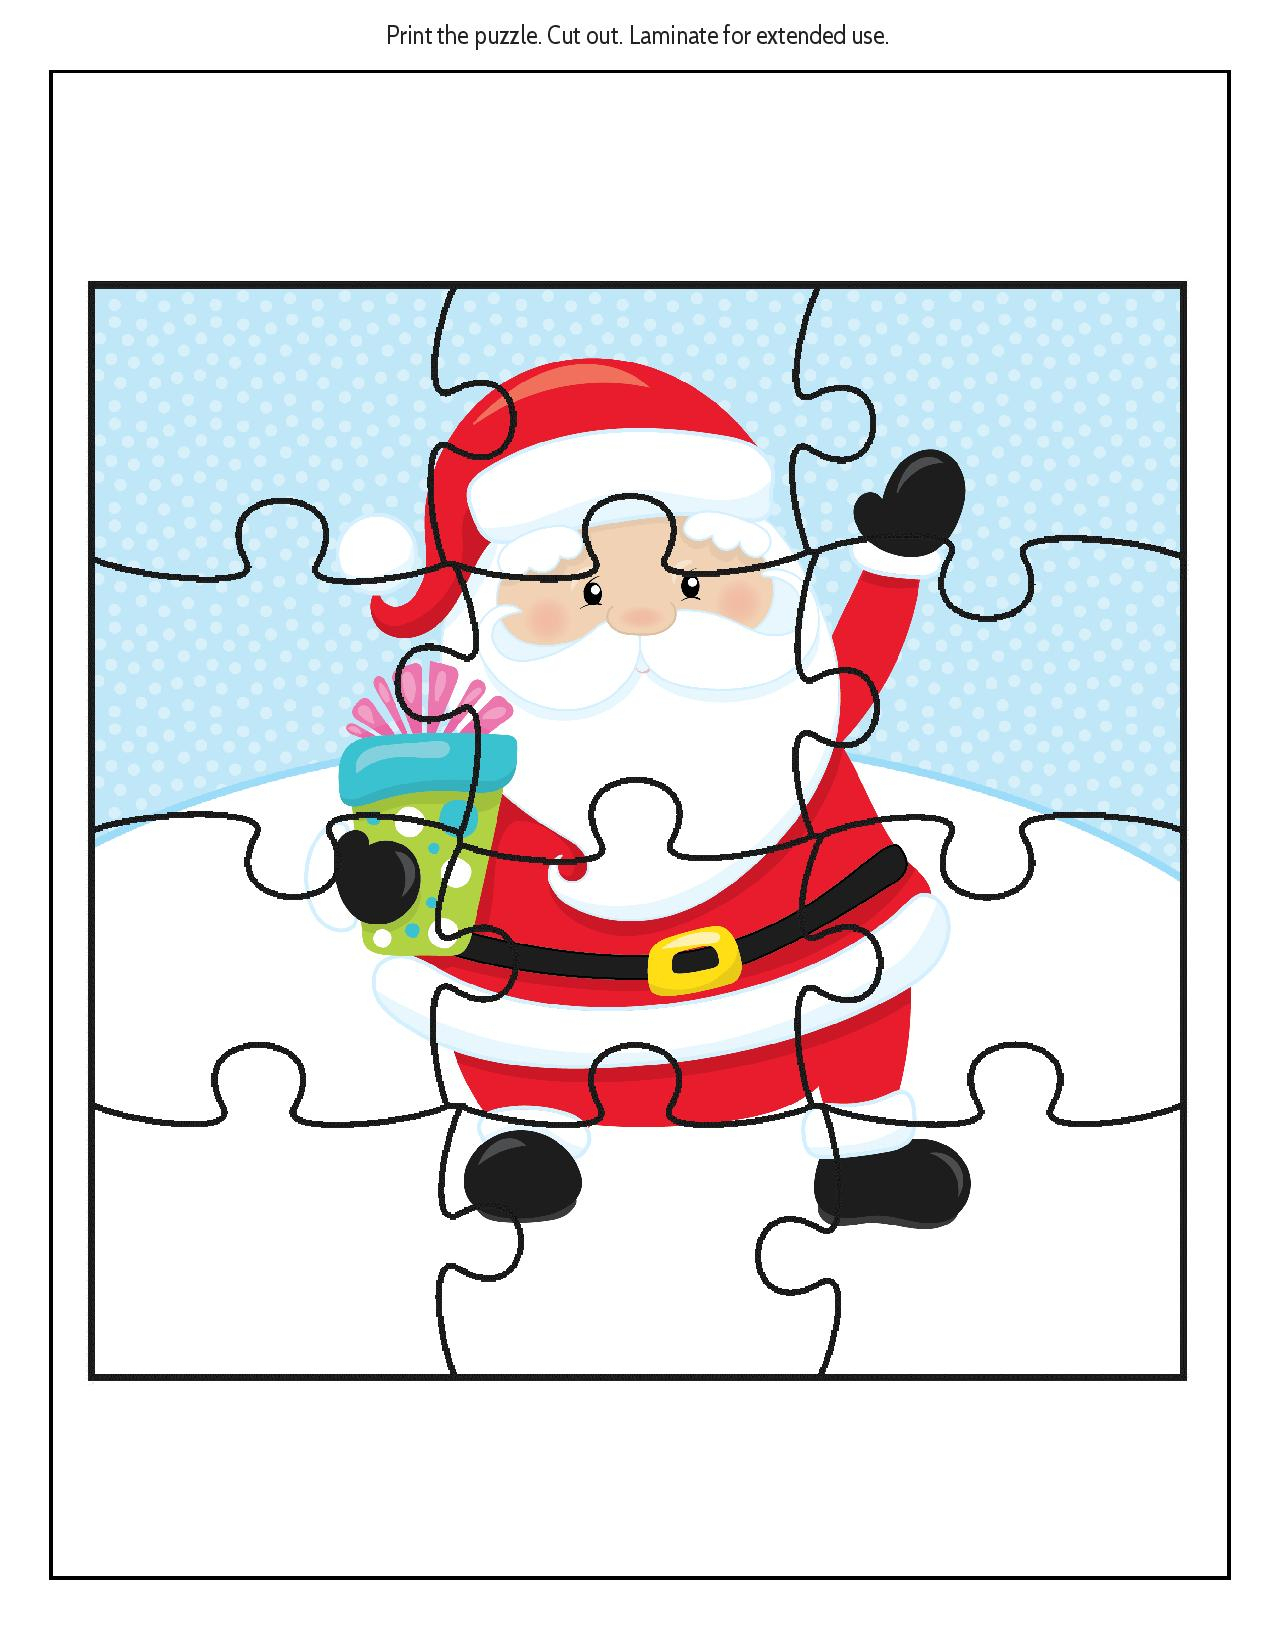 Free Educational Printable Christmas Puzzle Pack - Real And Quirky - Printable Santa Puzzle